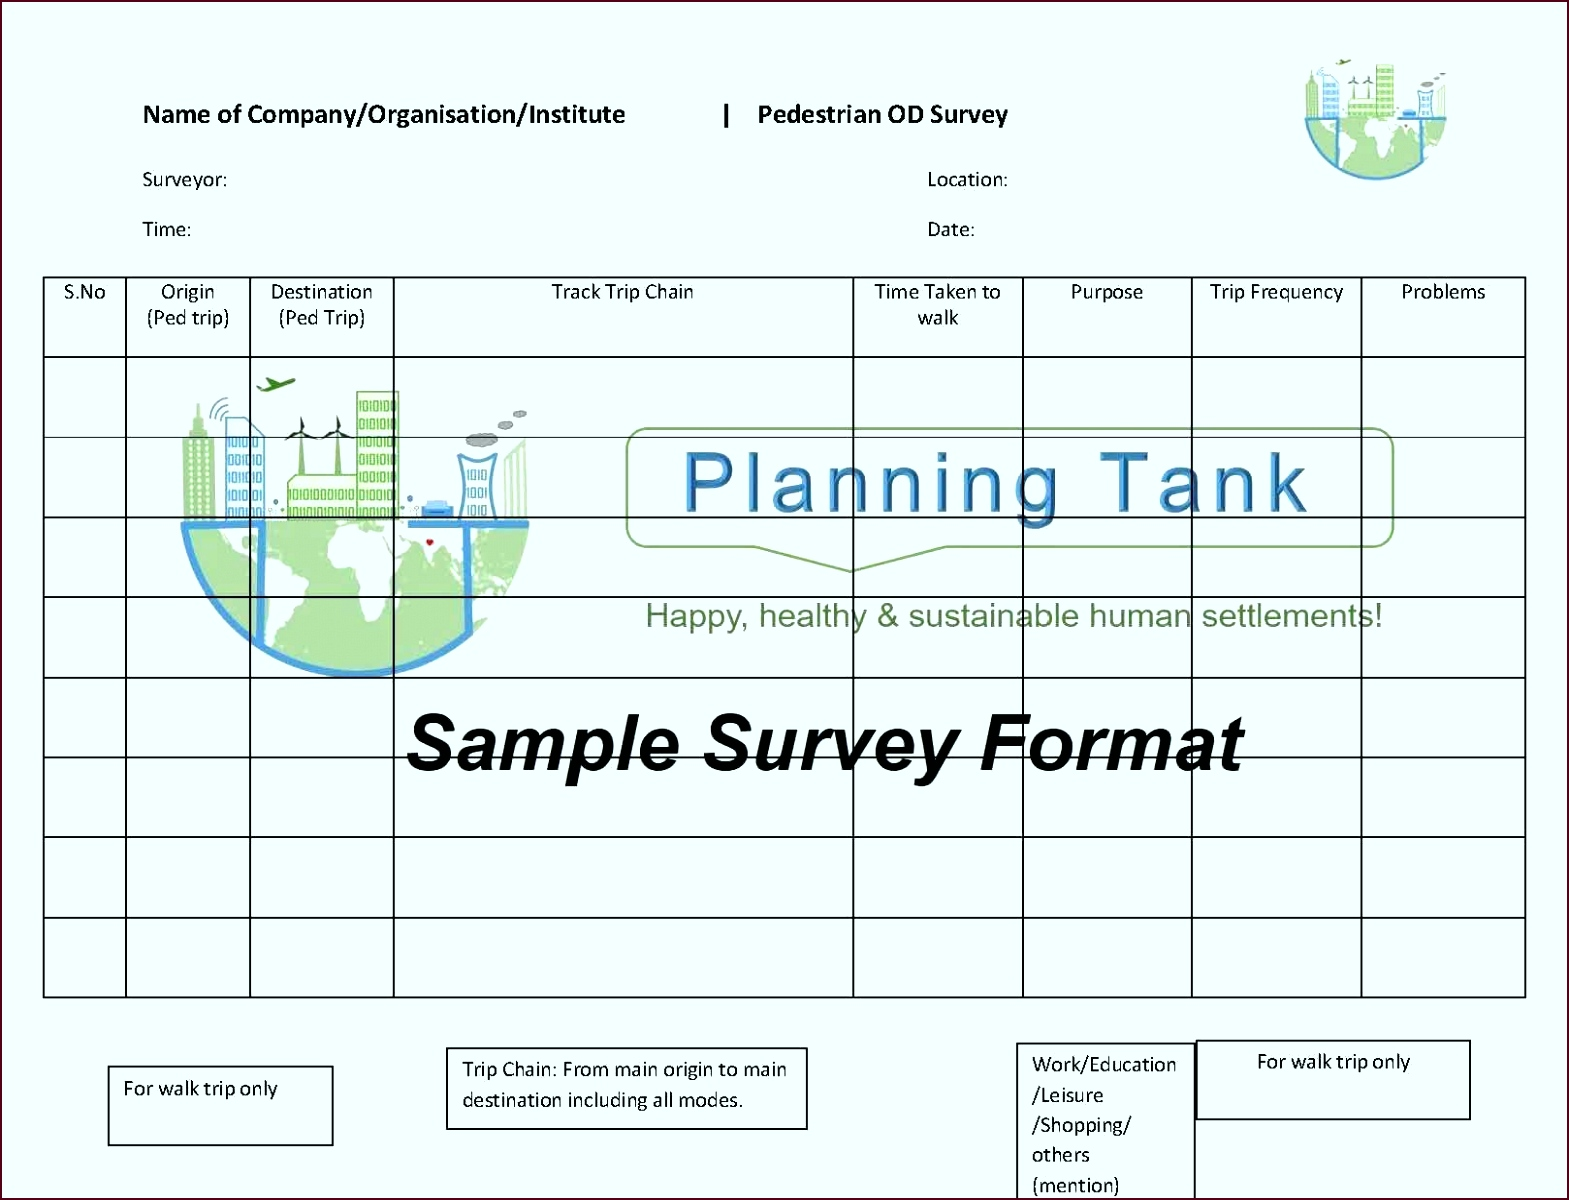 Gantt Chart In Powerpoint Unique Business Term Sheet Example or Pedestrian Od Survey Template Elegant Professional Beautiful Fake Pay Stub rauud